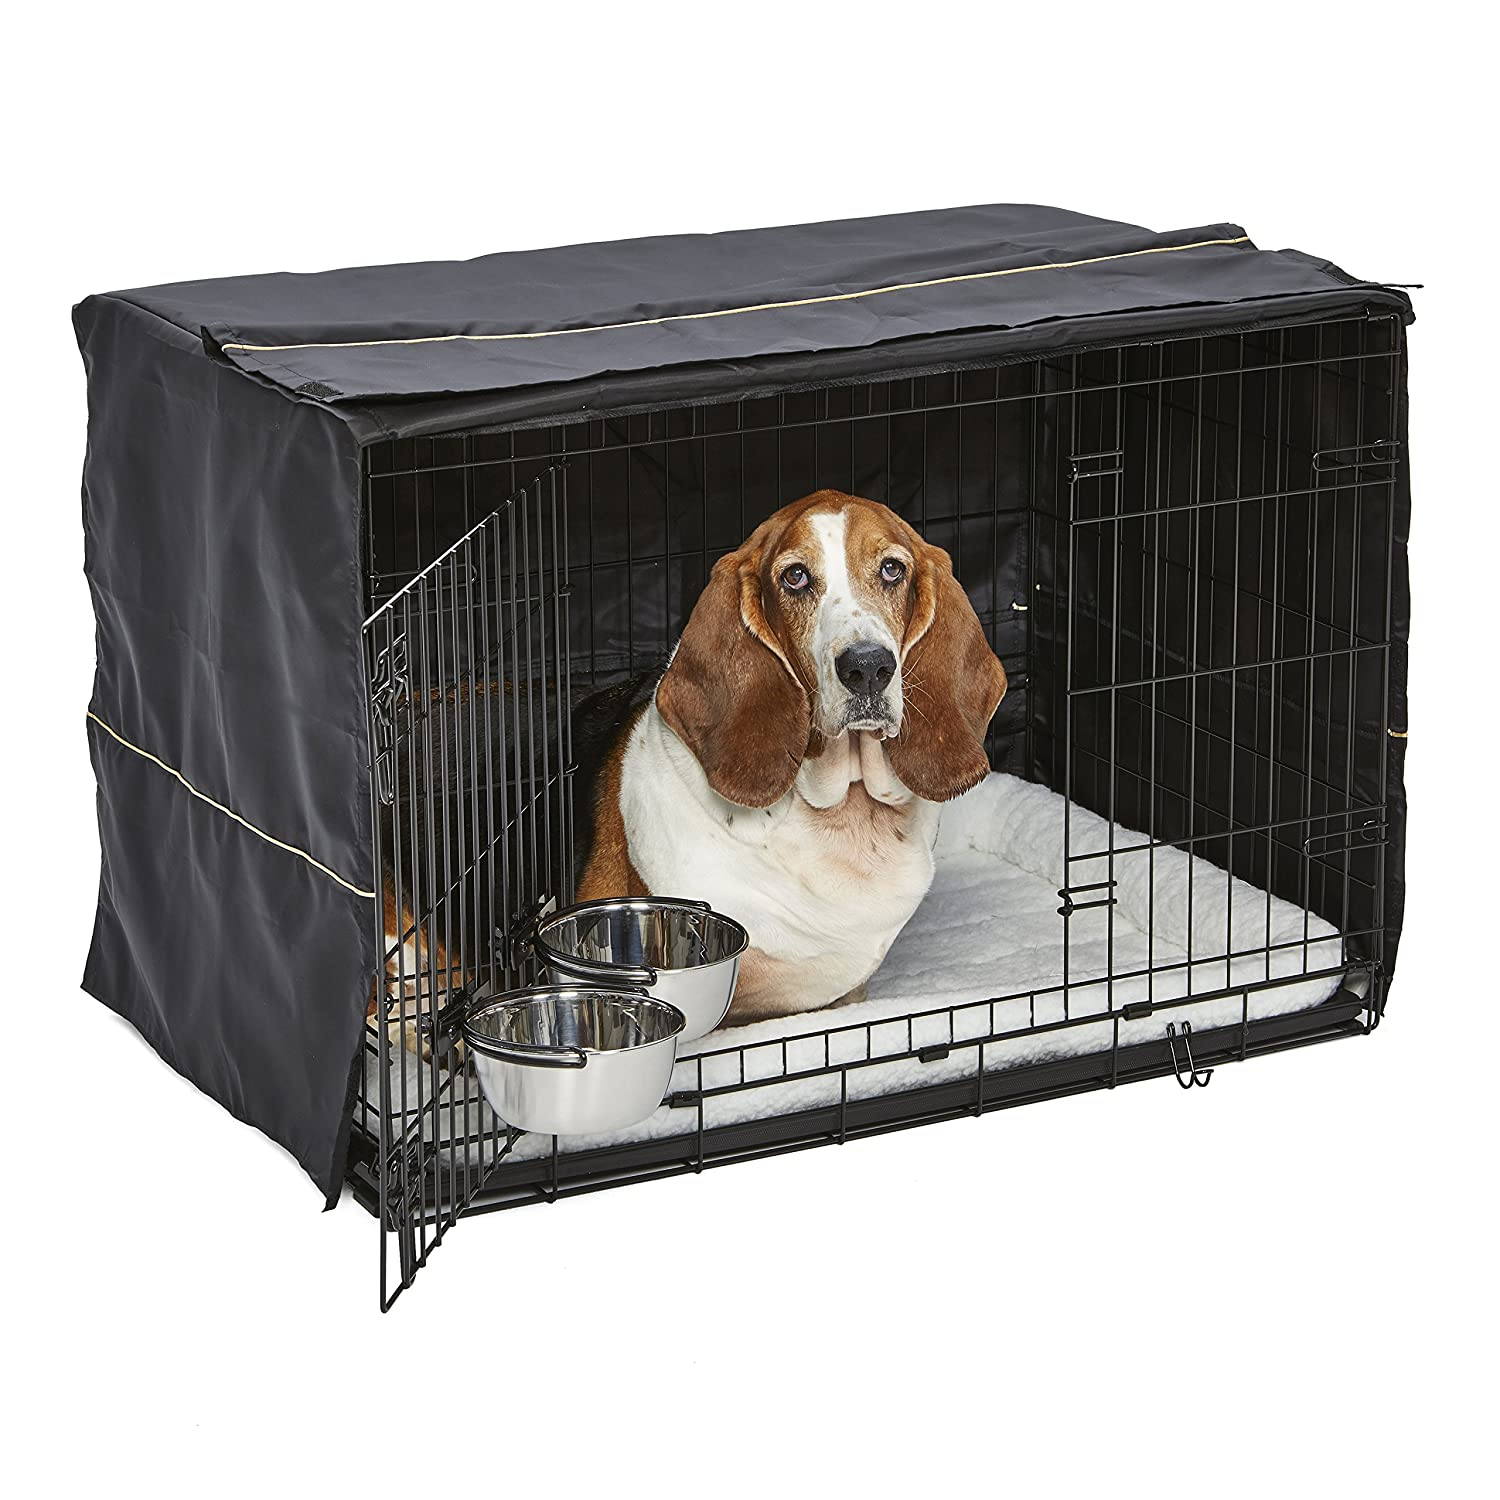 MidWest Homes for Pets iCrate Dog Crate Kit